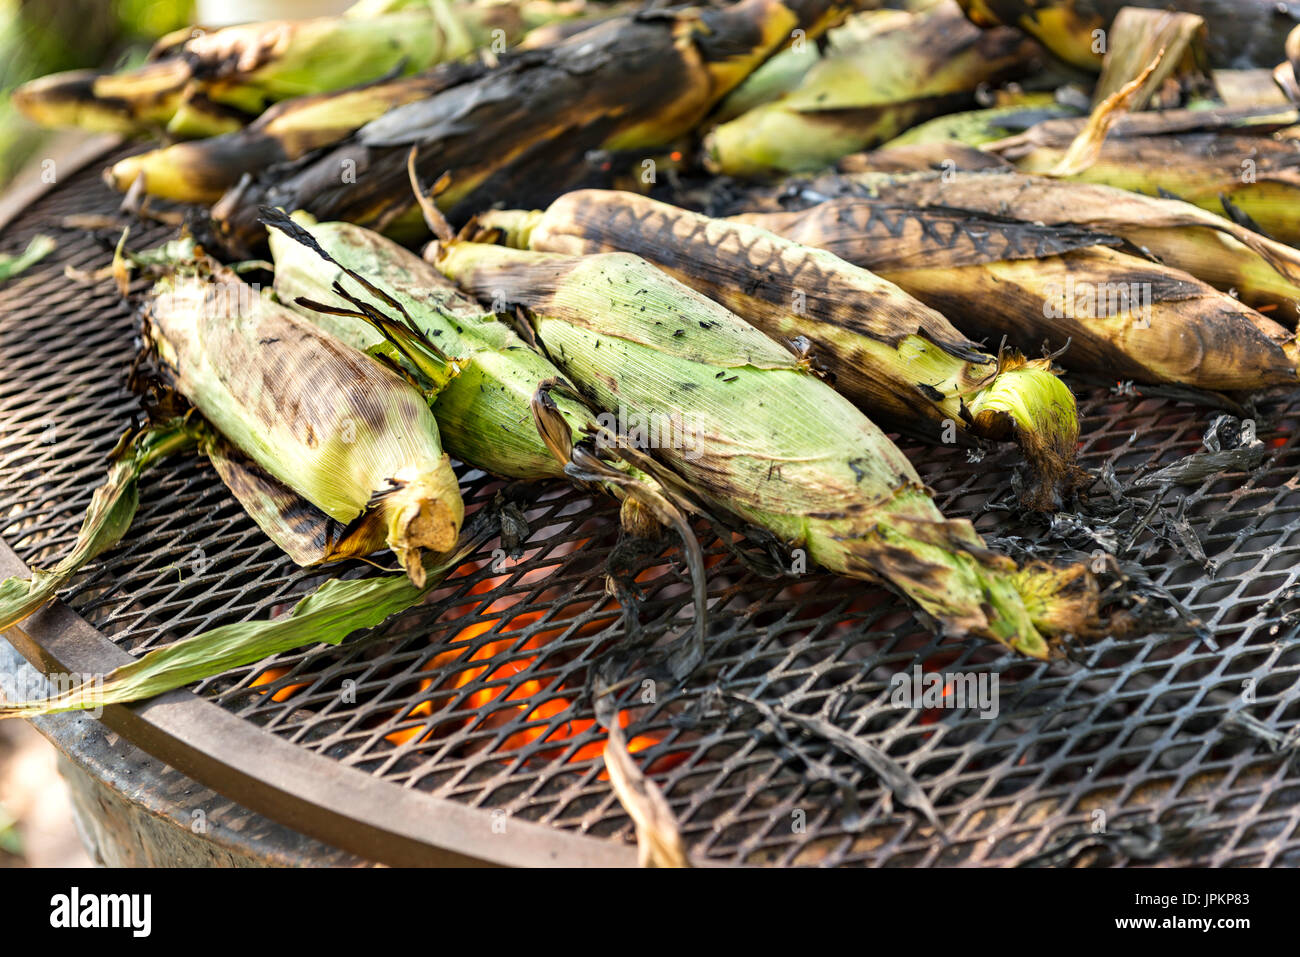 sweet corn grilled on open fire - Stock Image